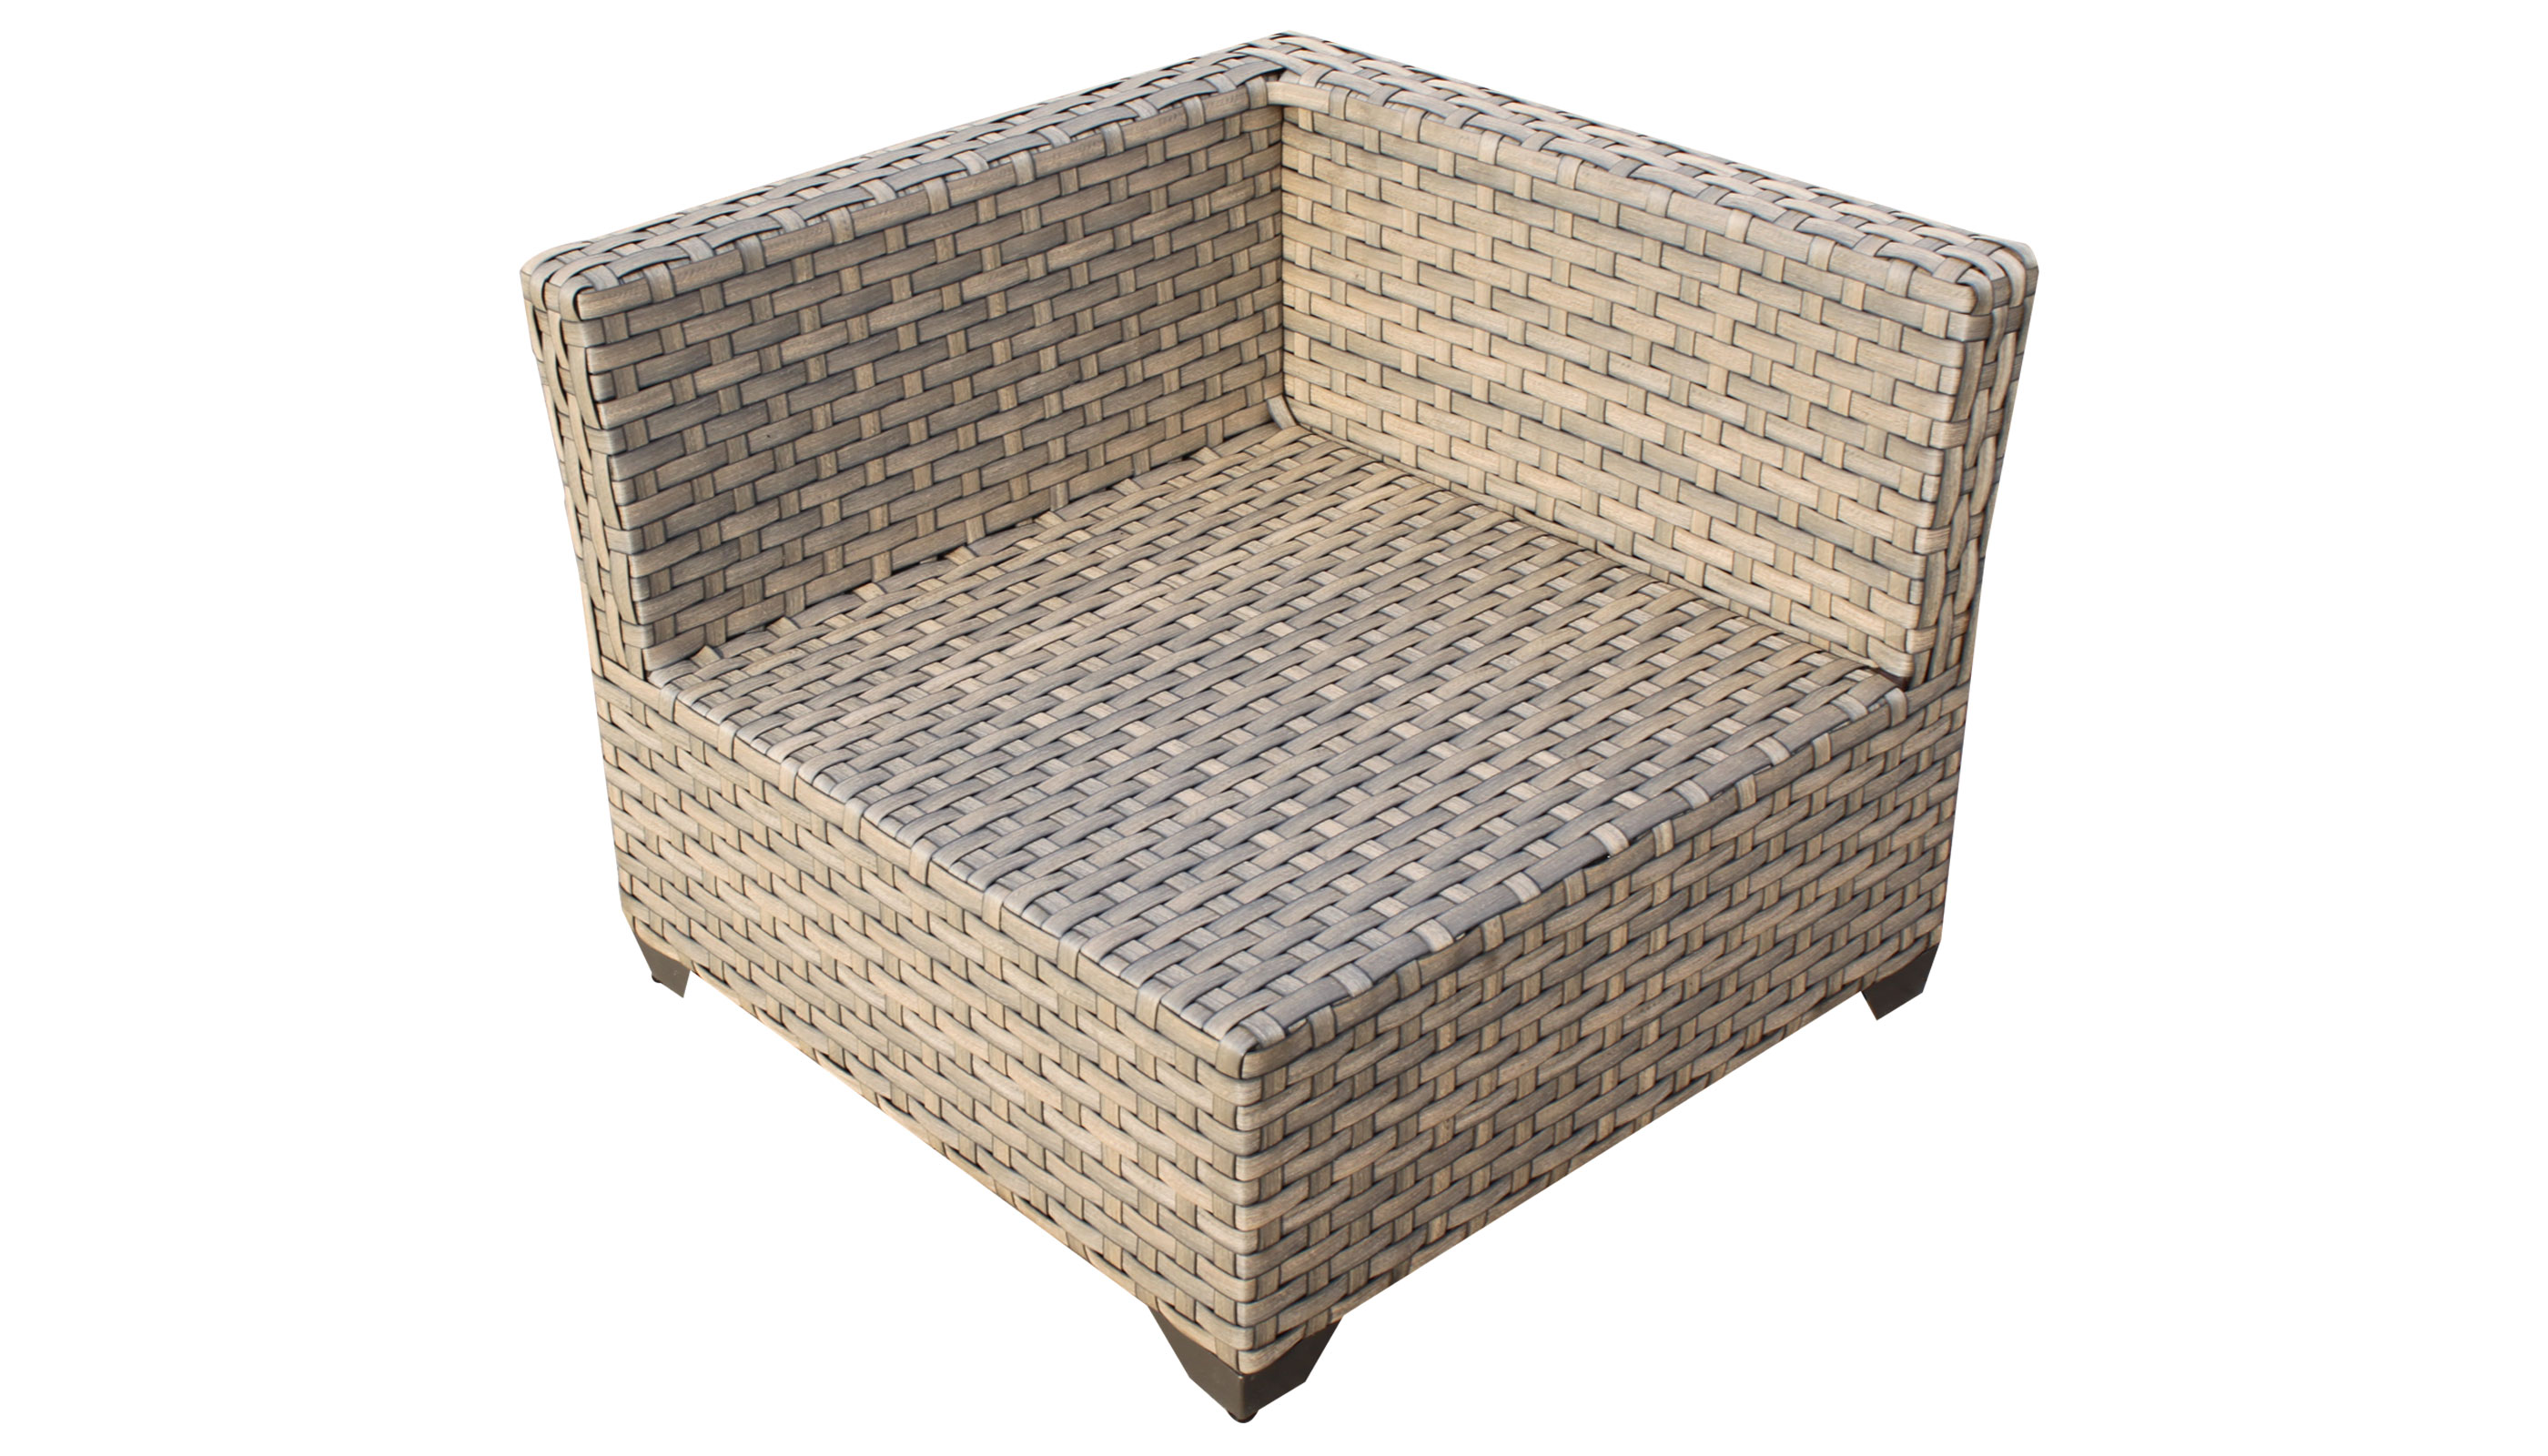 Monterey 6 Piece Outdoor Wicker Patio Furniture Set 06a -